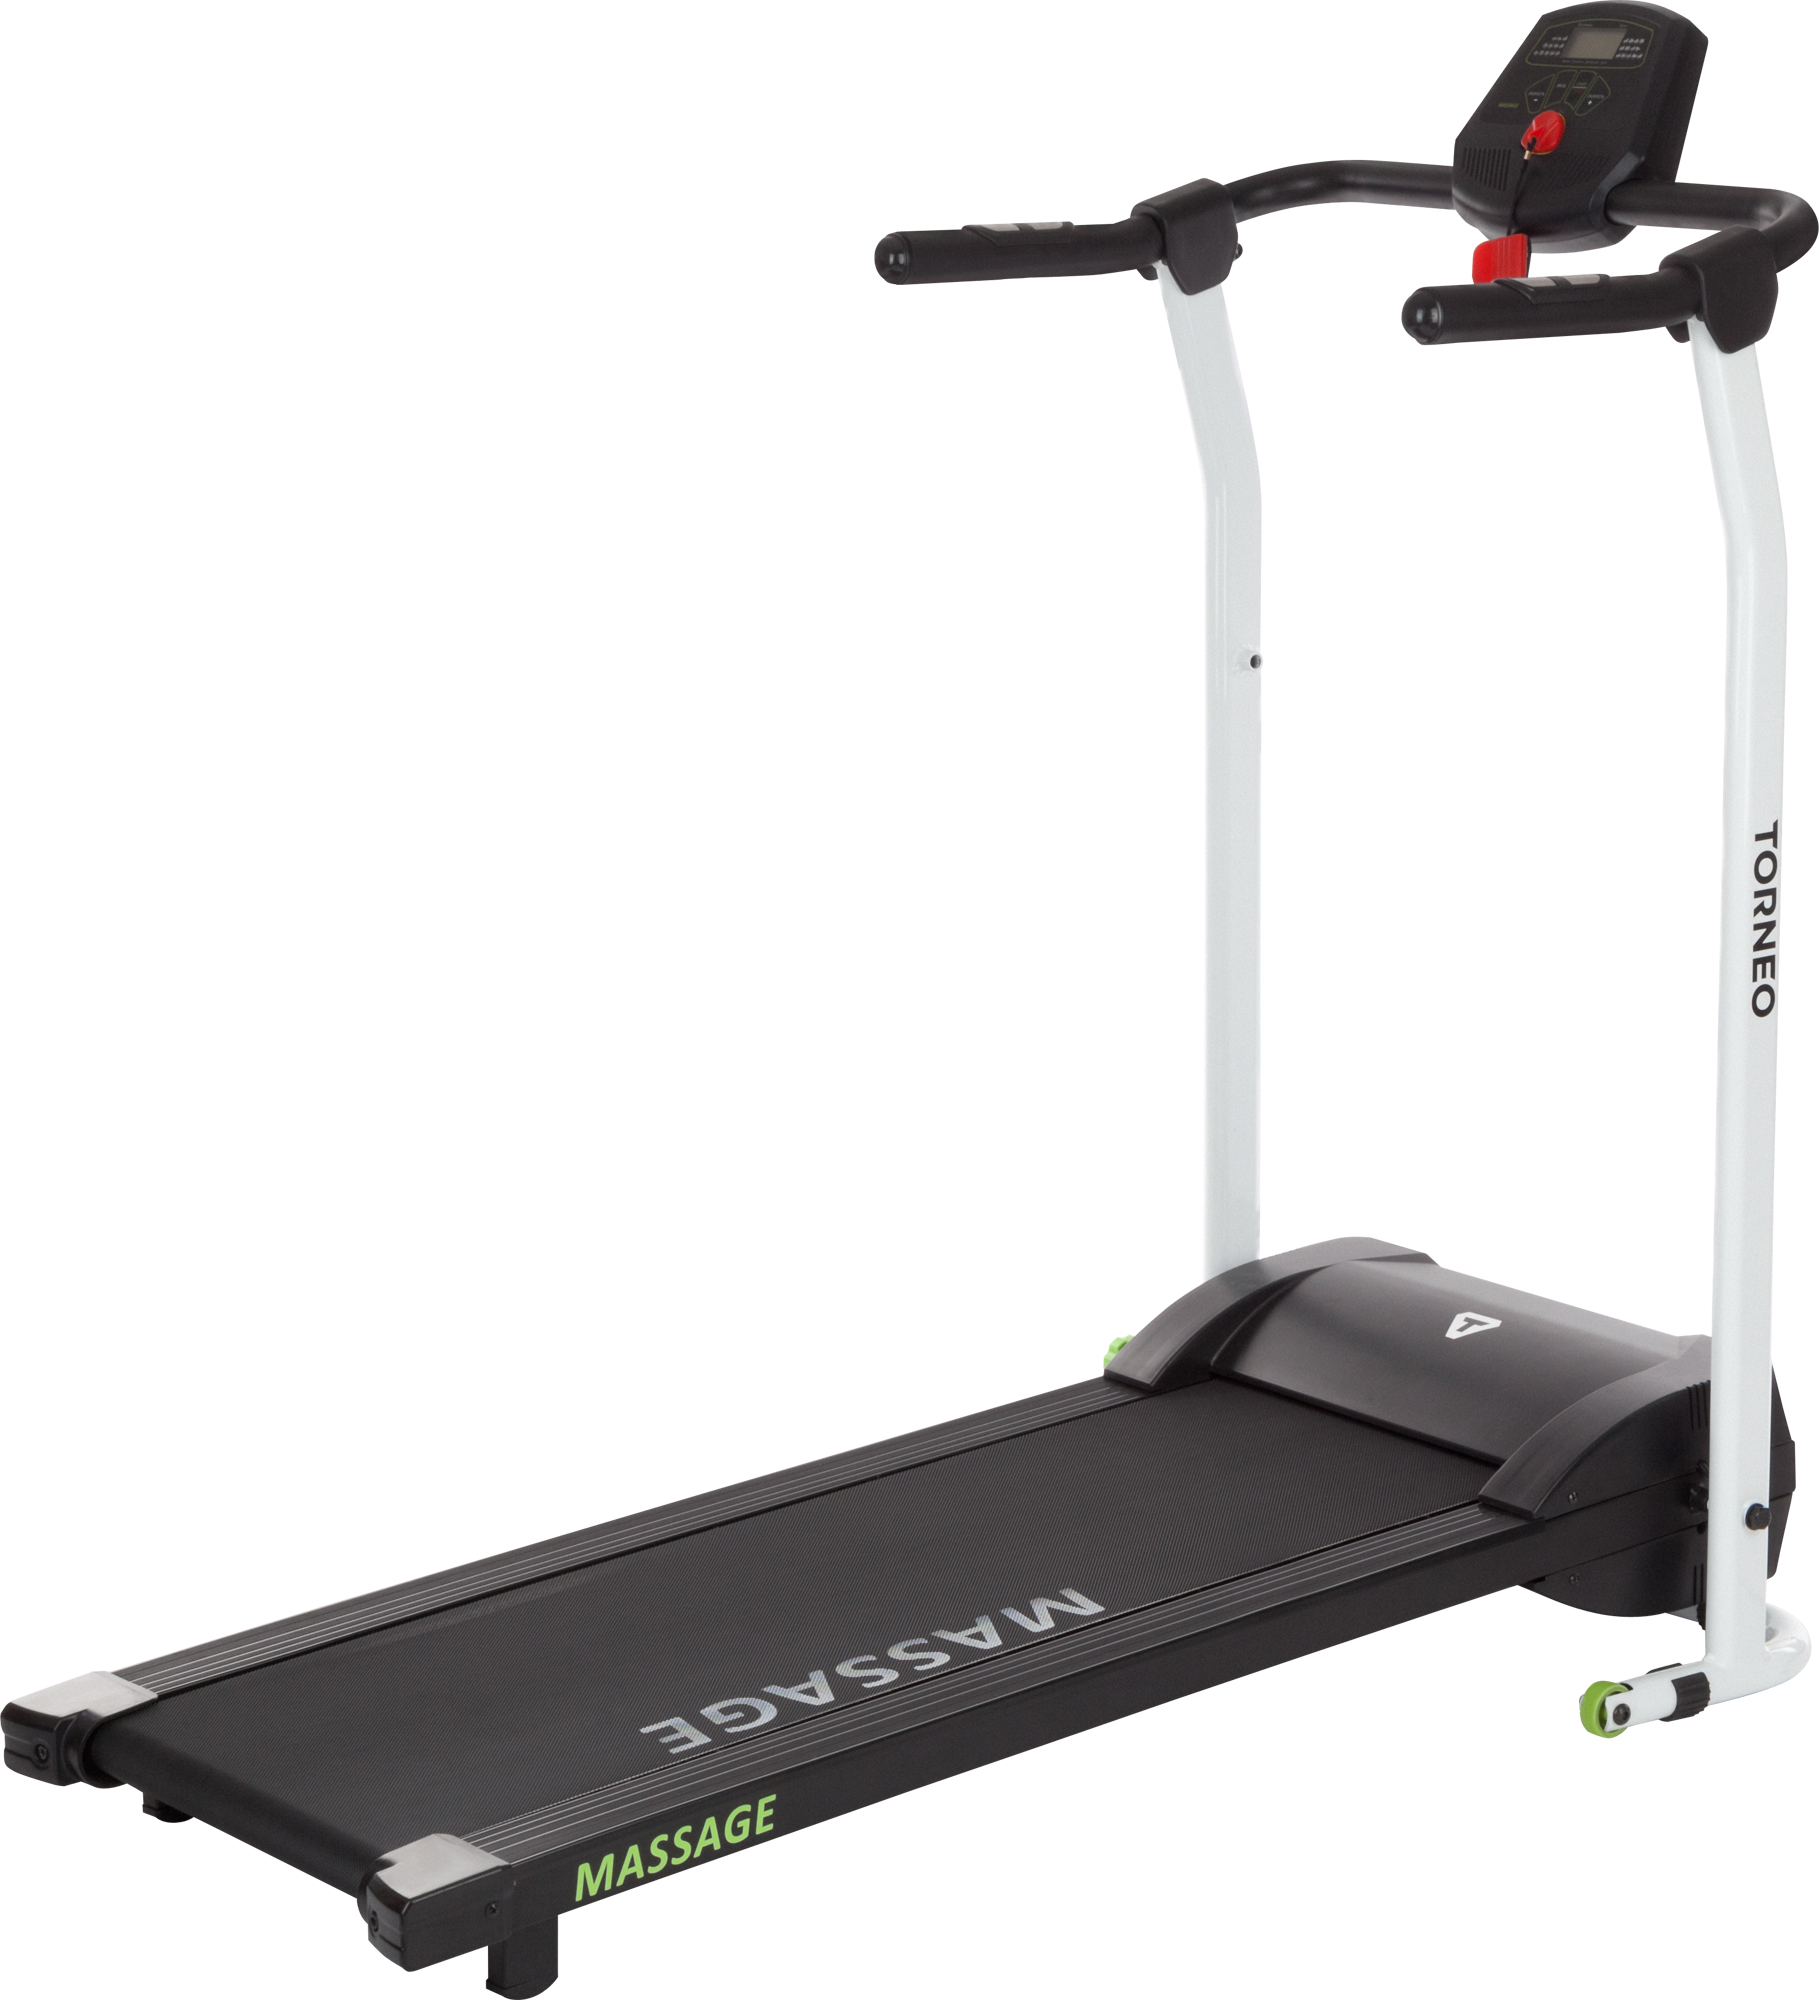 Torneo Torneo Massage Motorized Treadmill T-151 torneo воздушный змей torneo